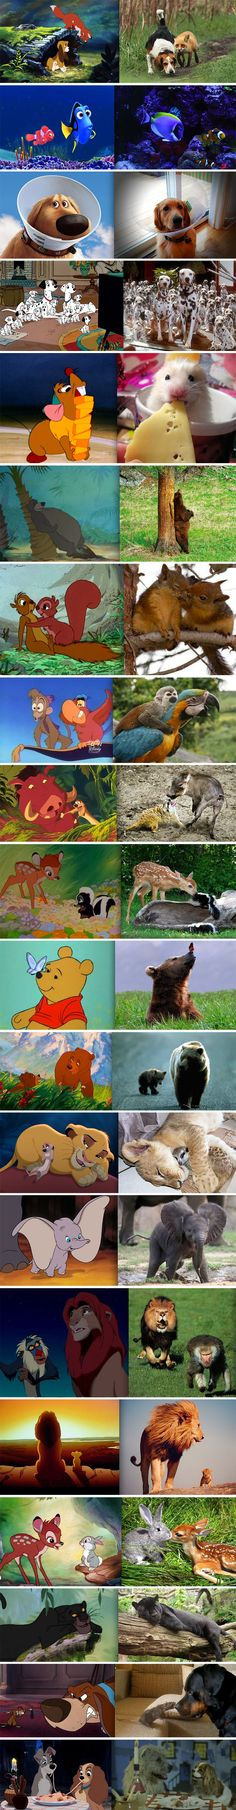 Disney characters in real life!